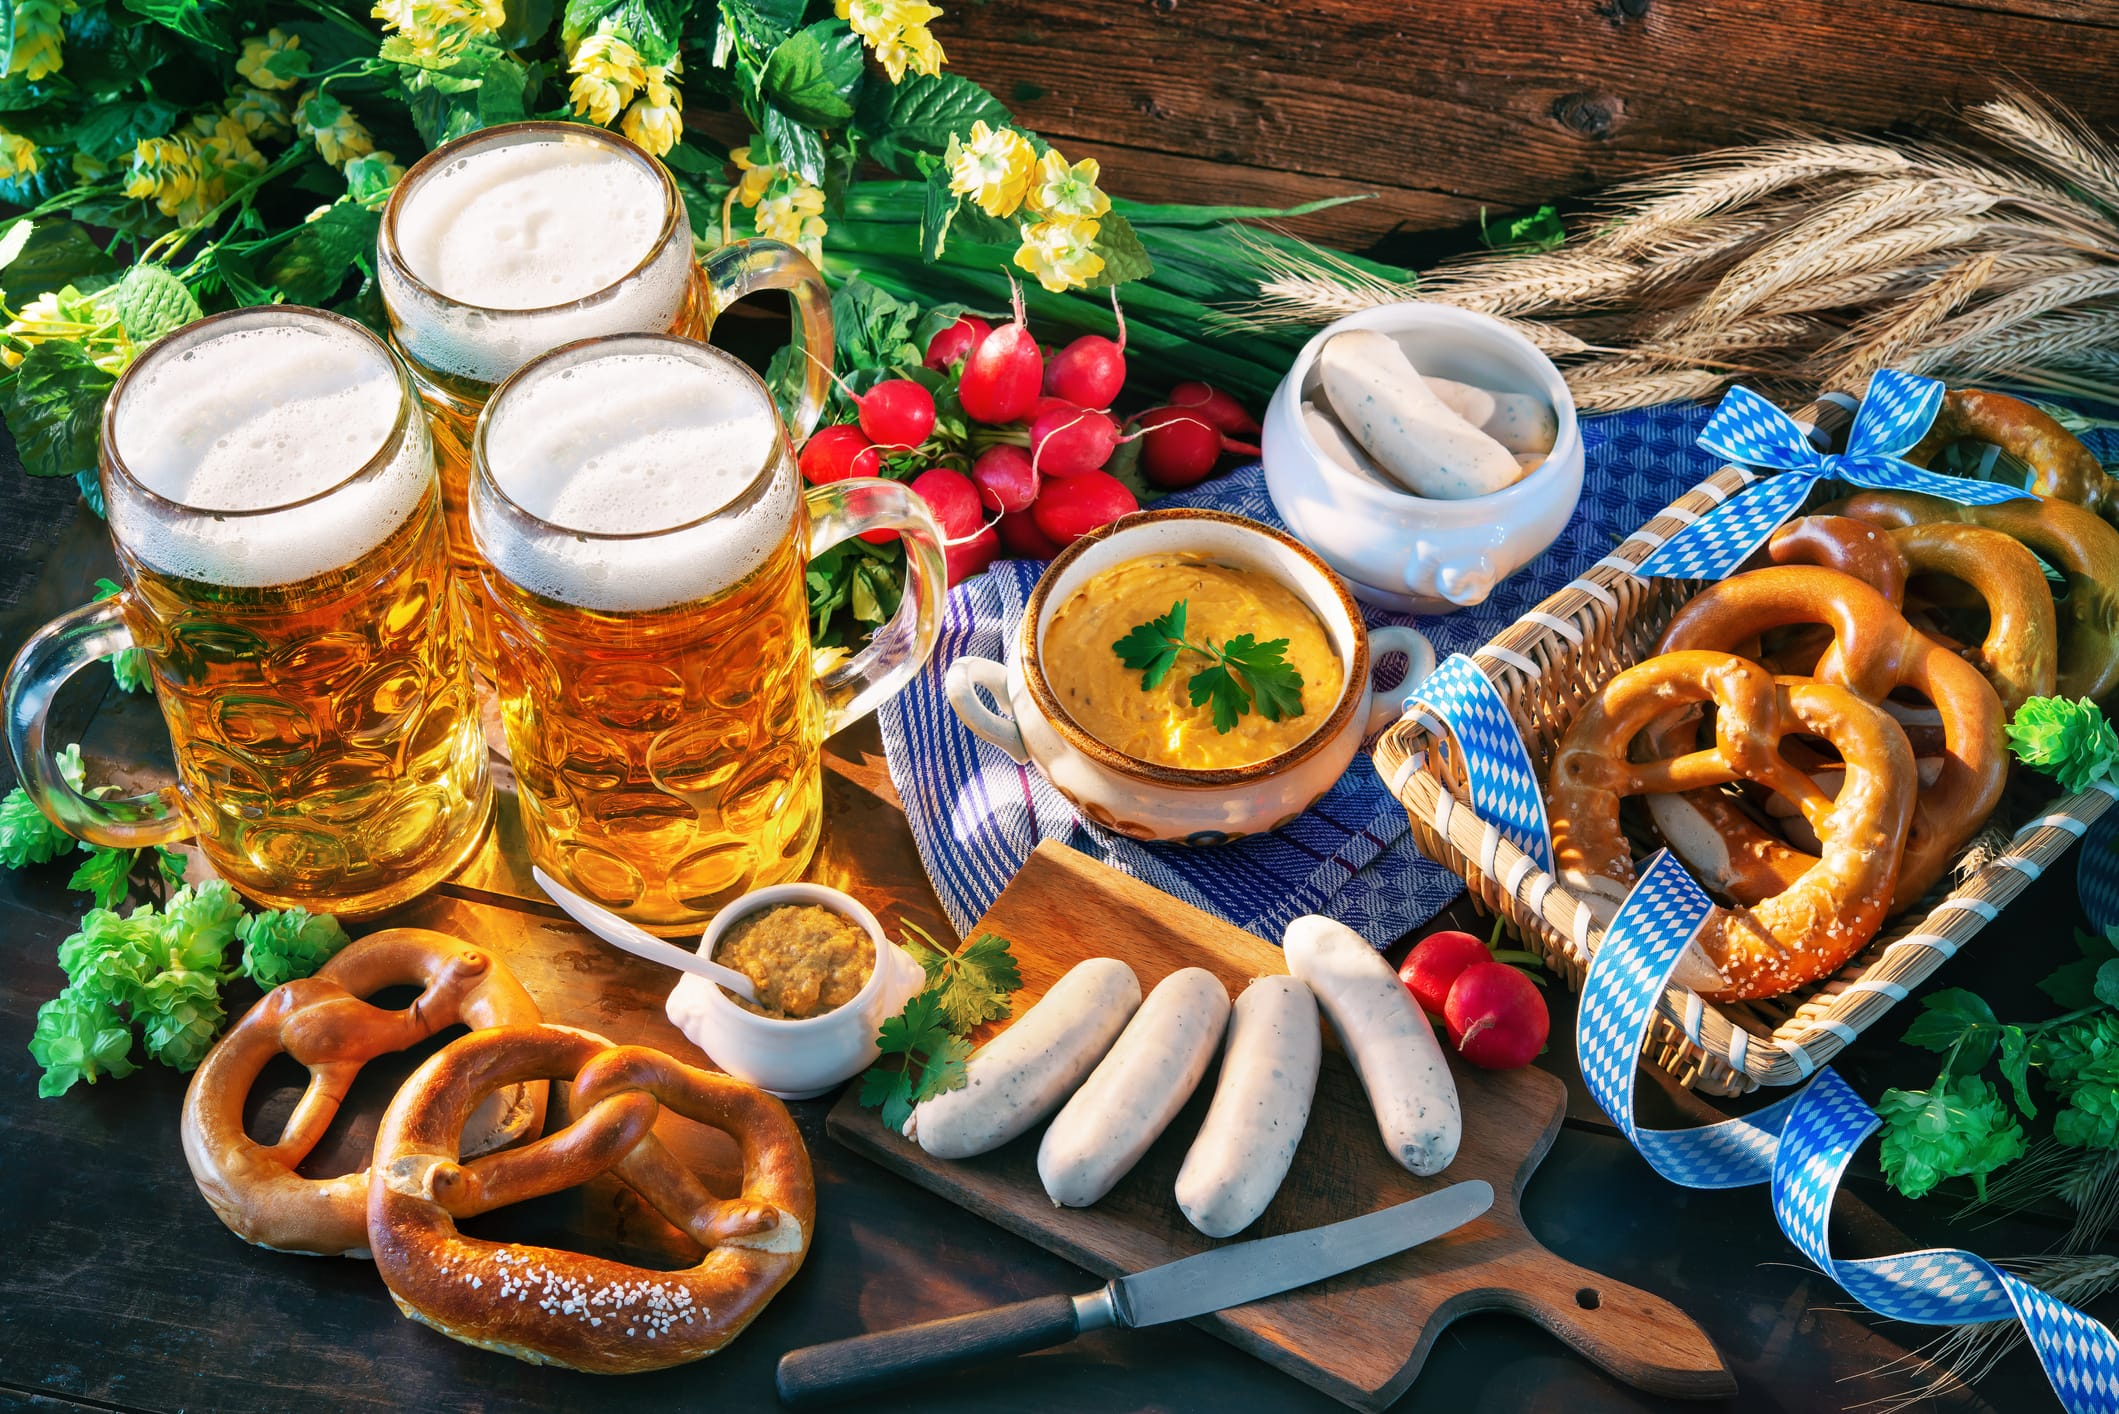 Get your lederhosen ready because Oktoberfest is nähe! We explore the top 5 Oktoberfests for sipping on beer steins in the United States.